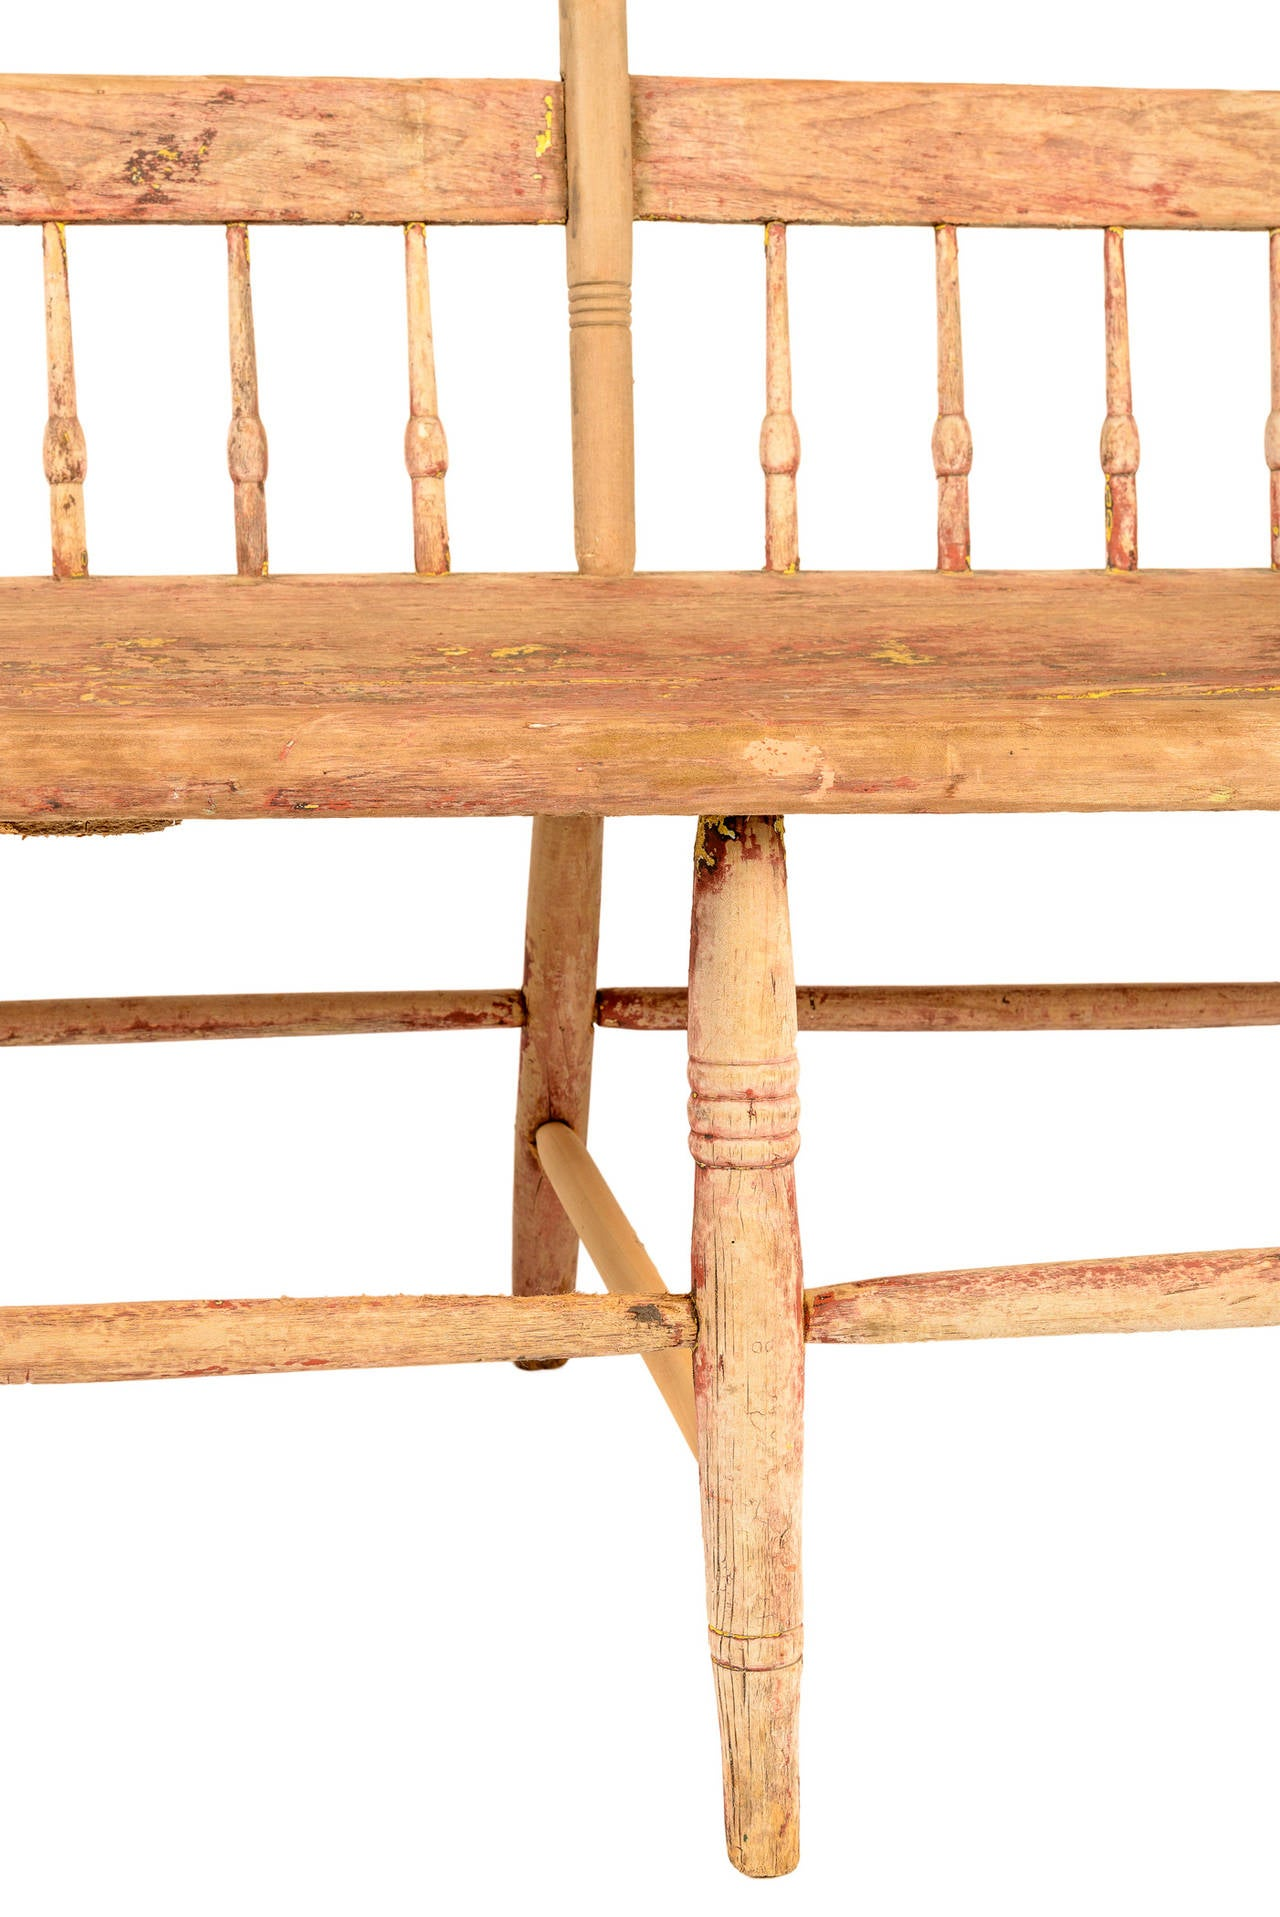 Deacons Bench Furniture 18th Century American Deacon S Bench For Sale At 1stdibs